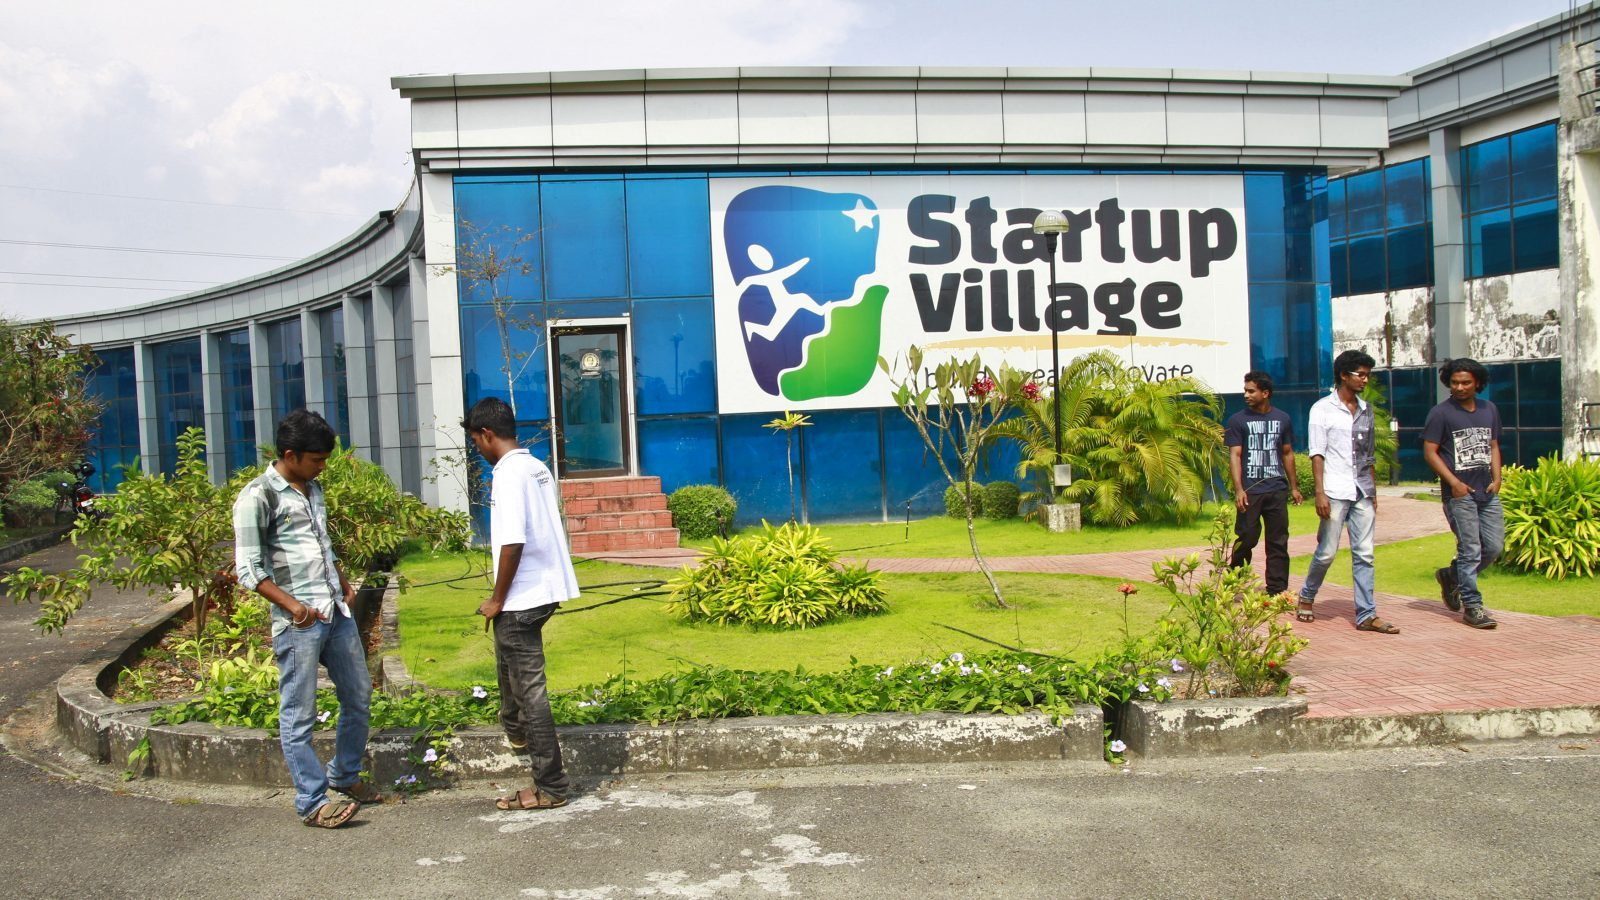 Employees stand outside the Start-up Village in Kinfra High Tech Park in the southern Indian city of Kochi October 13, 2012. Three decades after Infosys, India's second-largest software service provider, was founded by middle-class engineers, the country has failed to create an enabling environment for first-generation entrepreneurs. Startup Village wants to break the logjam by helping engineers develop 1,000 Internet and mobile companies in the next 10 years. It provides its members with office space, guidance and a chance to hobnob with the stars of the tech industry. But critics say this may not even be the beginning of a game-changer unless India deals with a host of other impediments - from red tape to a lack of innovation and a dearth of investors - that are blocking entrepreneurship in Asia's third-largest economy. To match Feature INDIA-TECHVILLAGE/ Picture taken October 13, 2012. REUTERS/Sivaram V (INDIA - Tags: BUSINESS SCIENCE TECHNOLOGY EMPLOYMENT) - GM1E8C403NM01